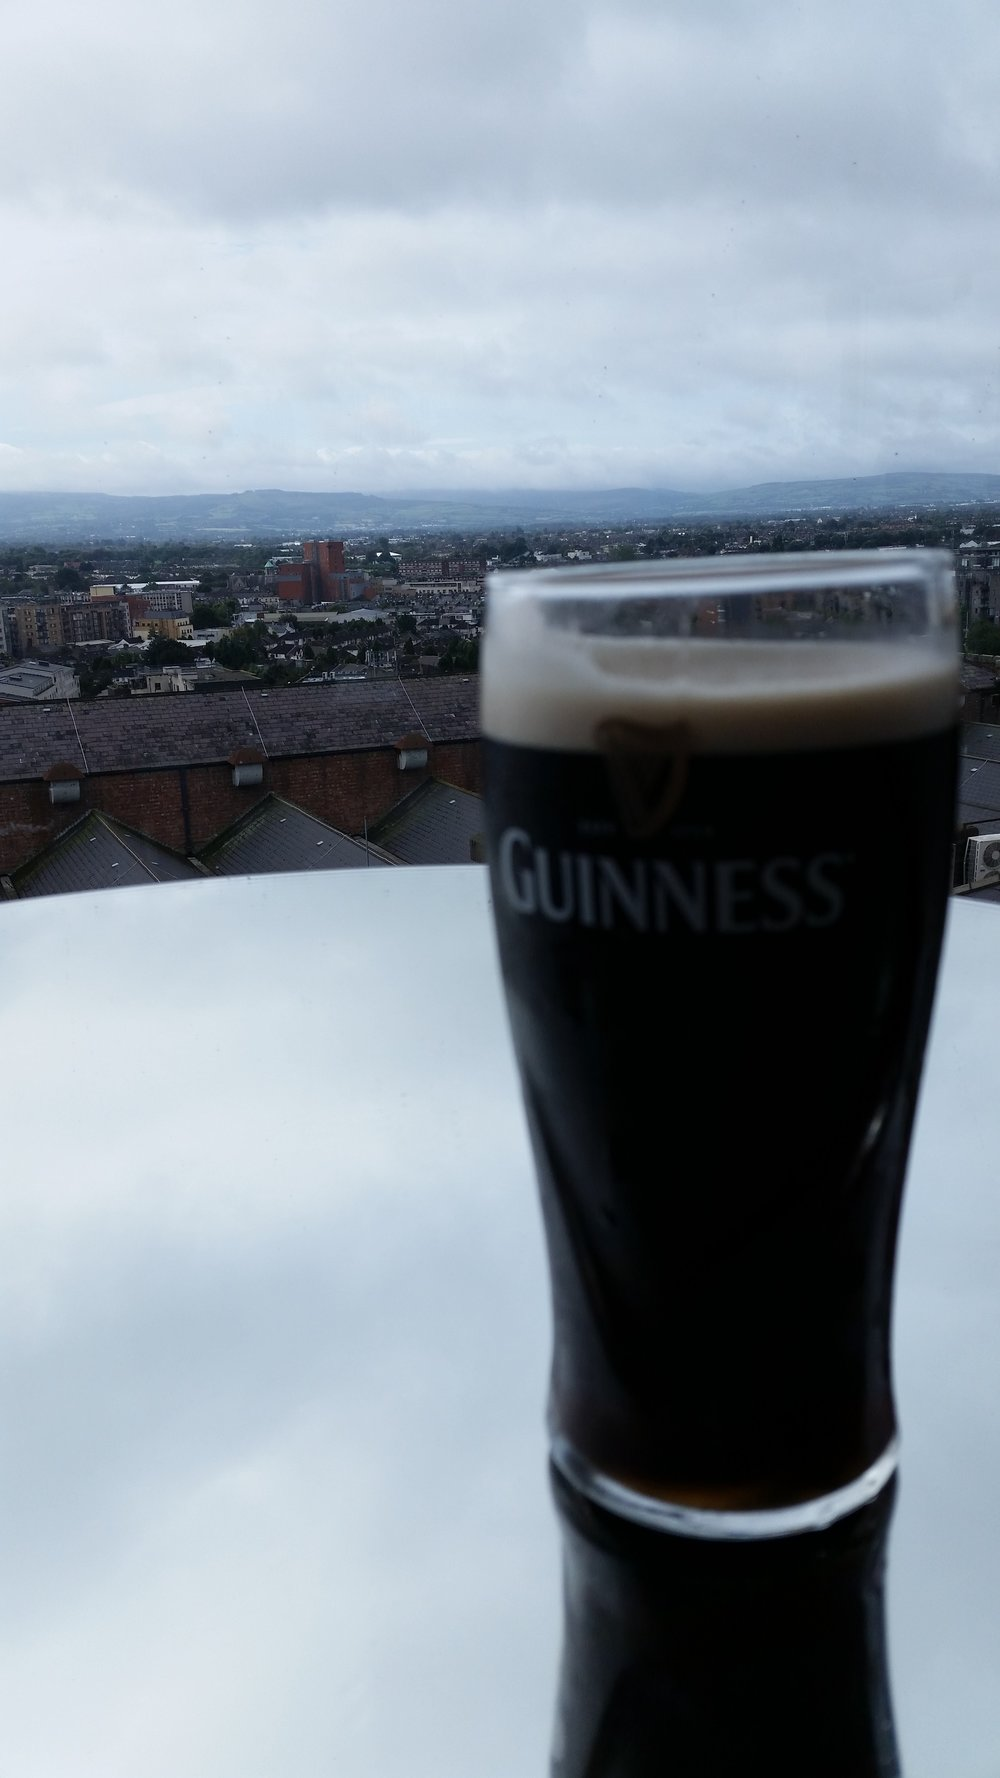 If you go to Dublin and don't get to Guinness, did you really go to Dublin?